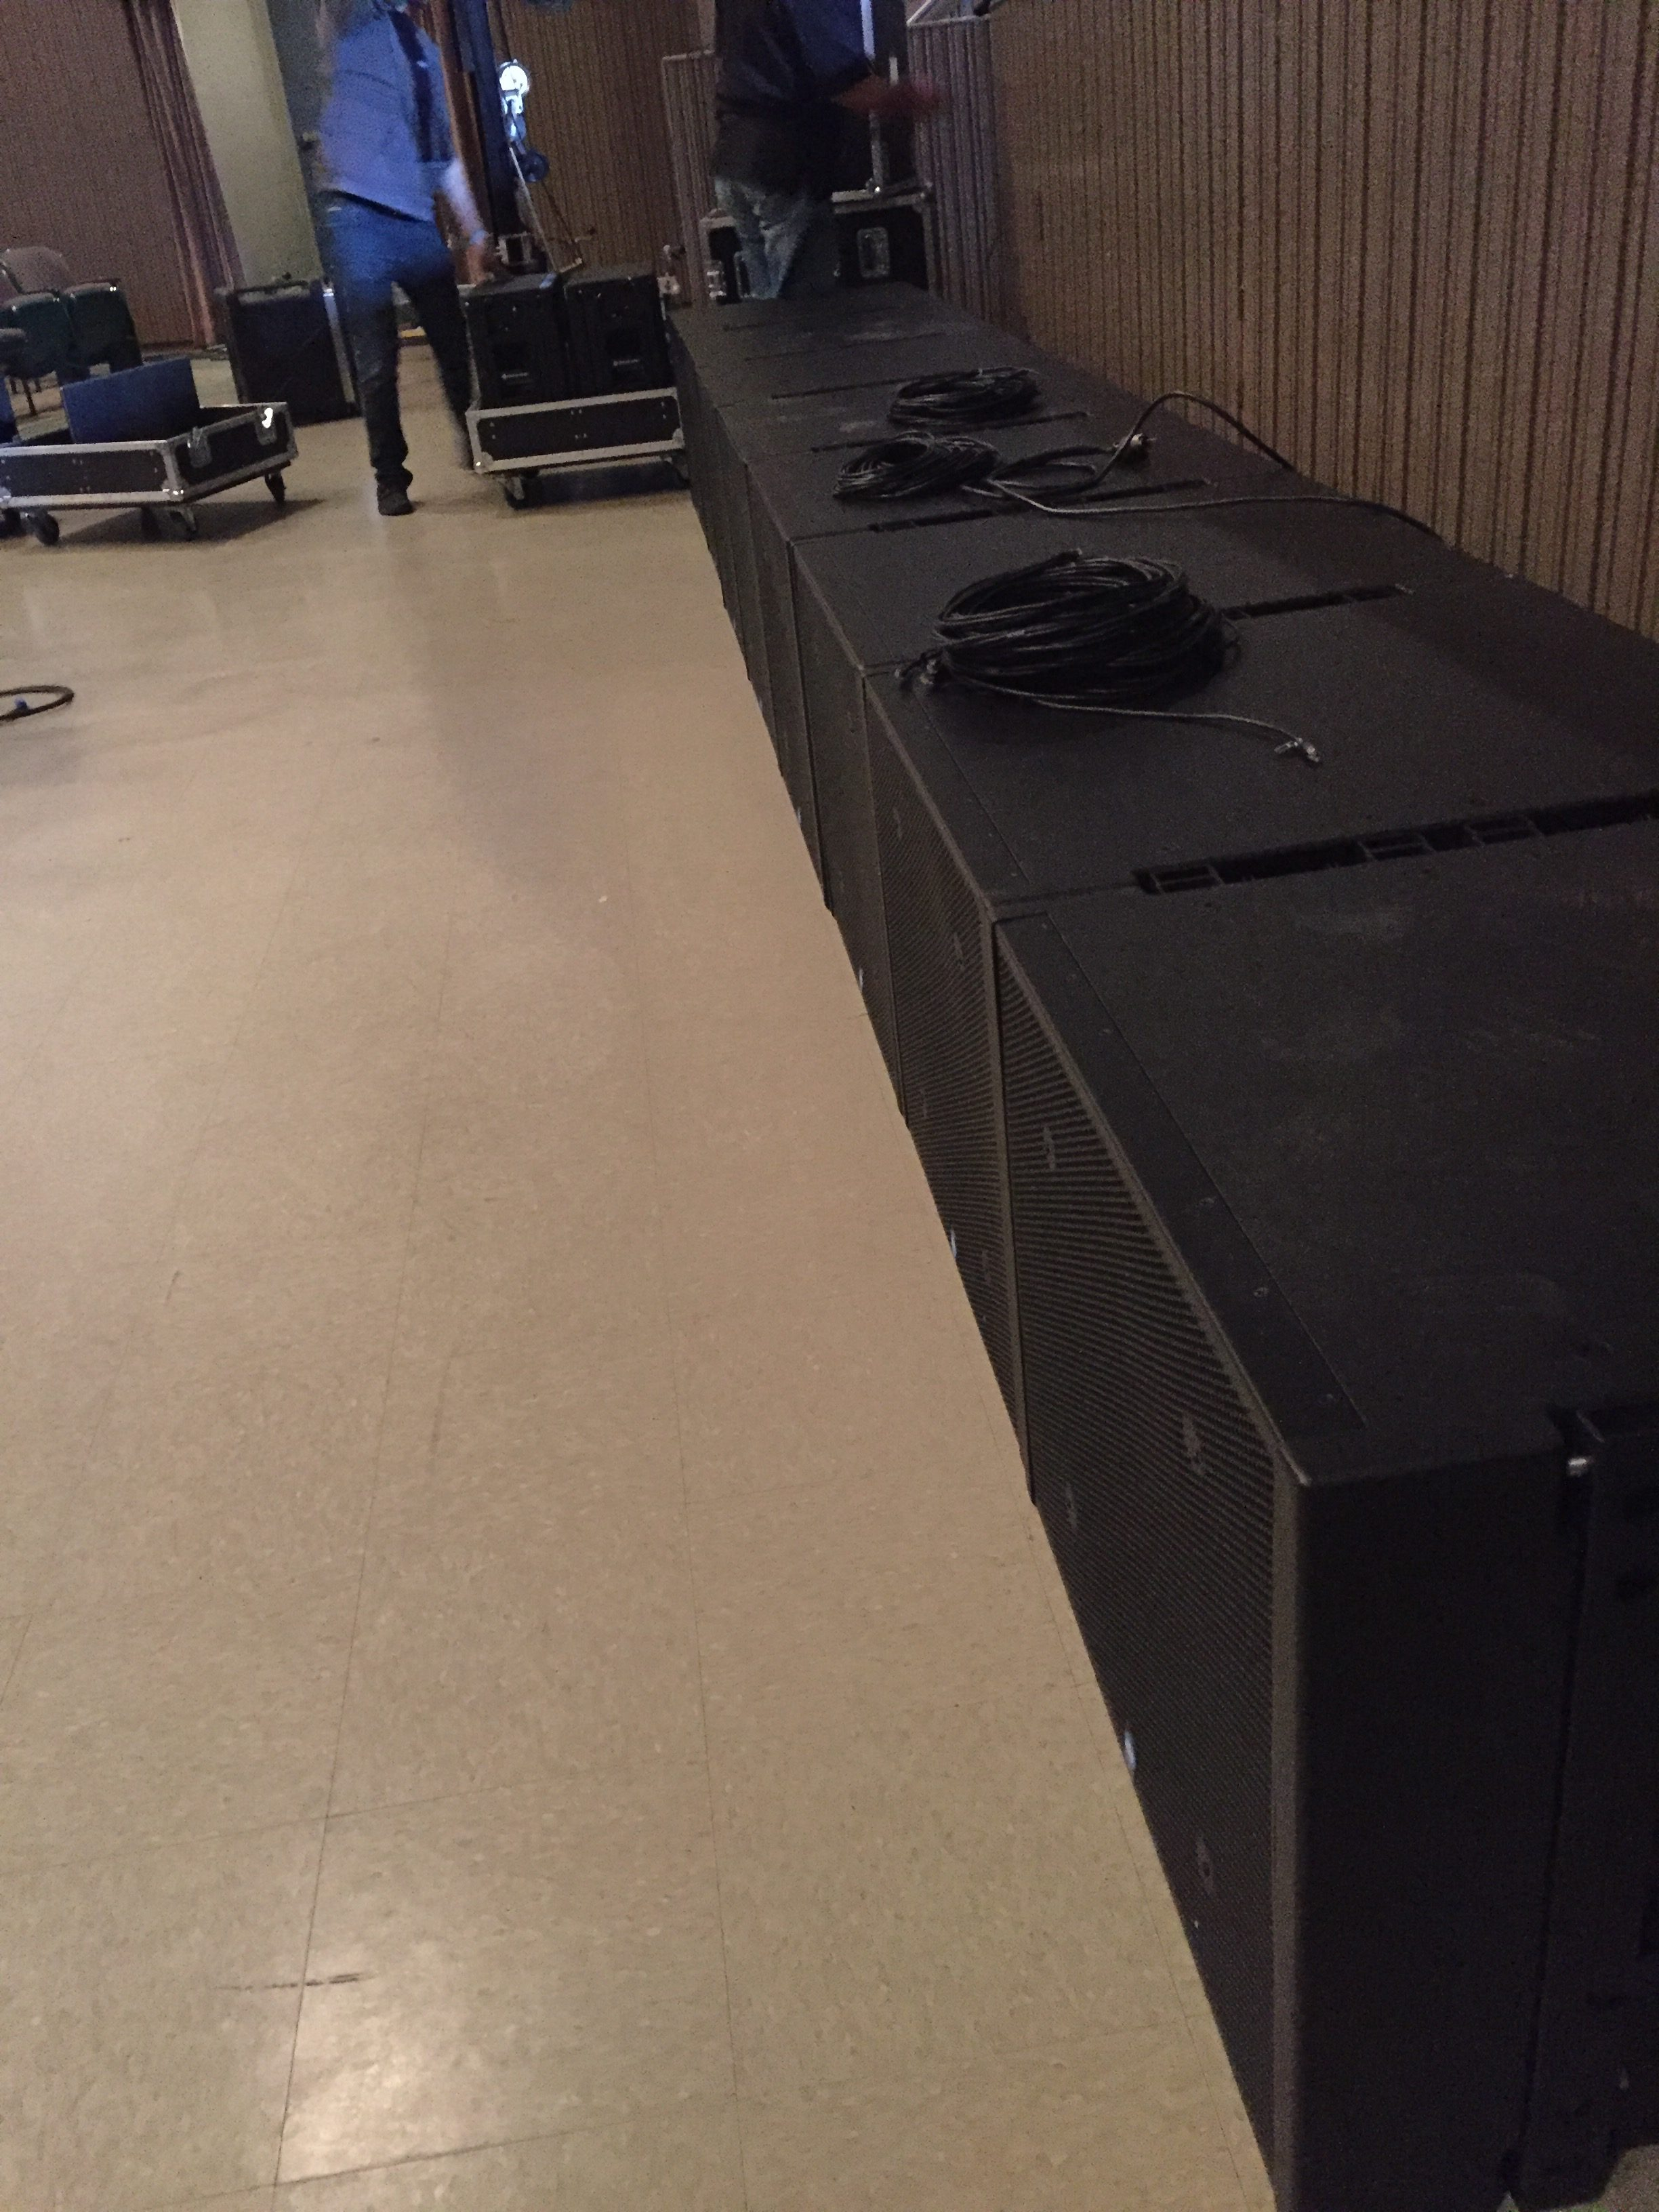 Lots of IC118 Subwoofers for our demo!